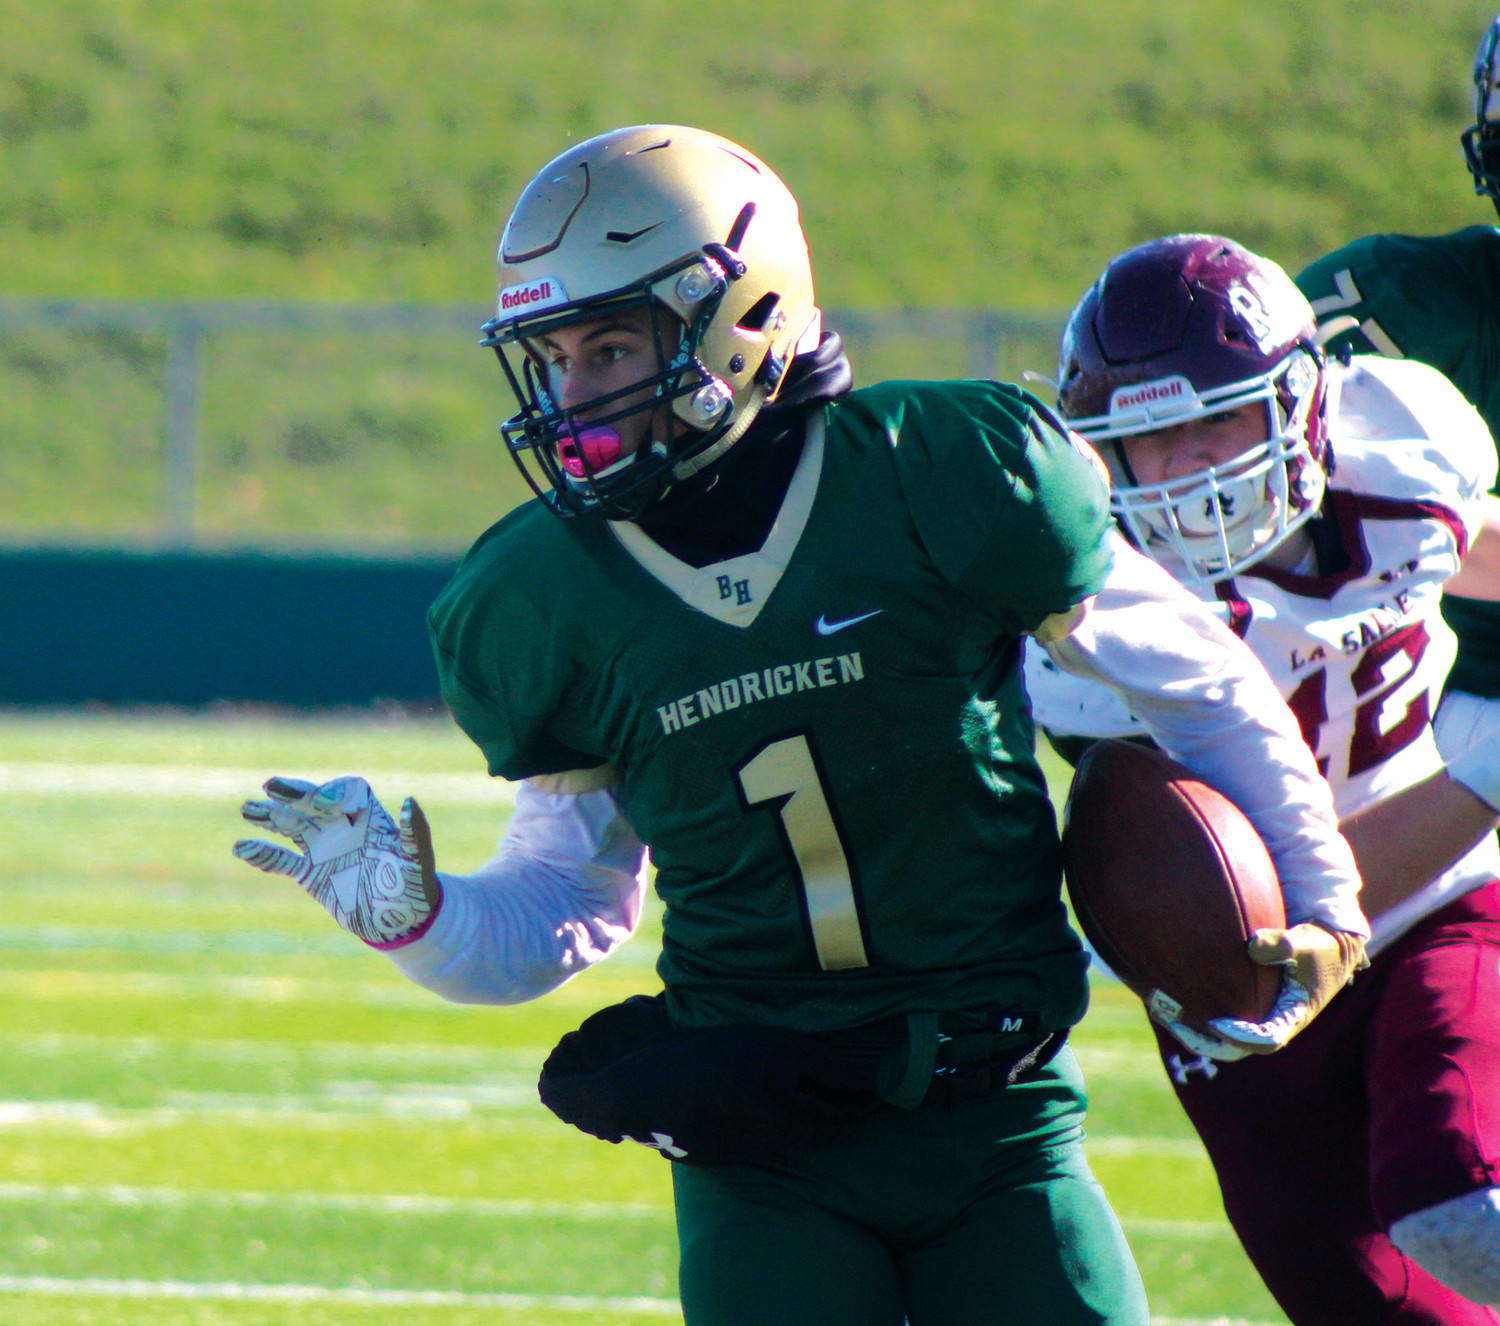 THROUGH TRAFFIC: Bishop Hendricken's Angel Sanchez picks up some yards after hauling in a catch. (